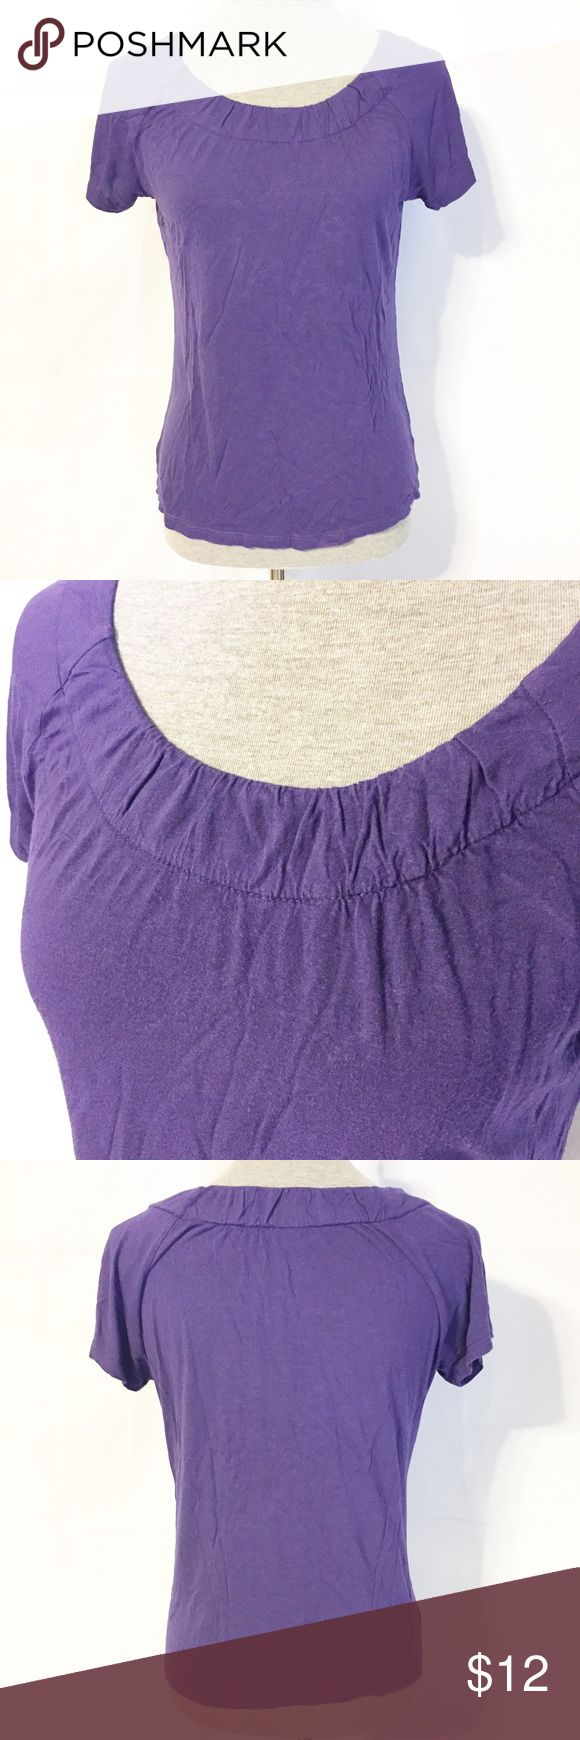 """MICHAEL Michael Kors Ruffle Neck Tshirt Medium Great basic Tshirt from Michael Kors with a lovely detailed neckline. Pretty purple color, this Tshirt is very soft and comfy. Has a very small pinhole (pictured) but in otherwise great condition. Previously worn. Approximate Lay Flat Measurements are: 23"""" Long from shoulder to hem, 18"""" Bust laying flat. Size Medium from MICHAEL Michael Kors MICHAEL Michael Kors Tops"""